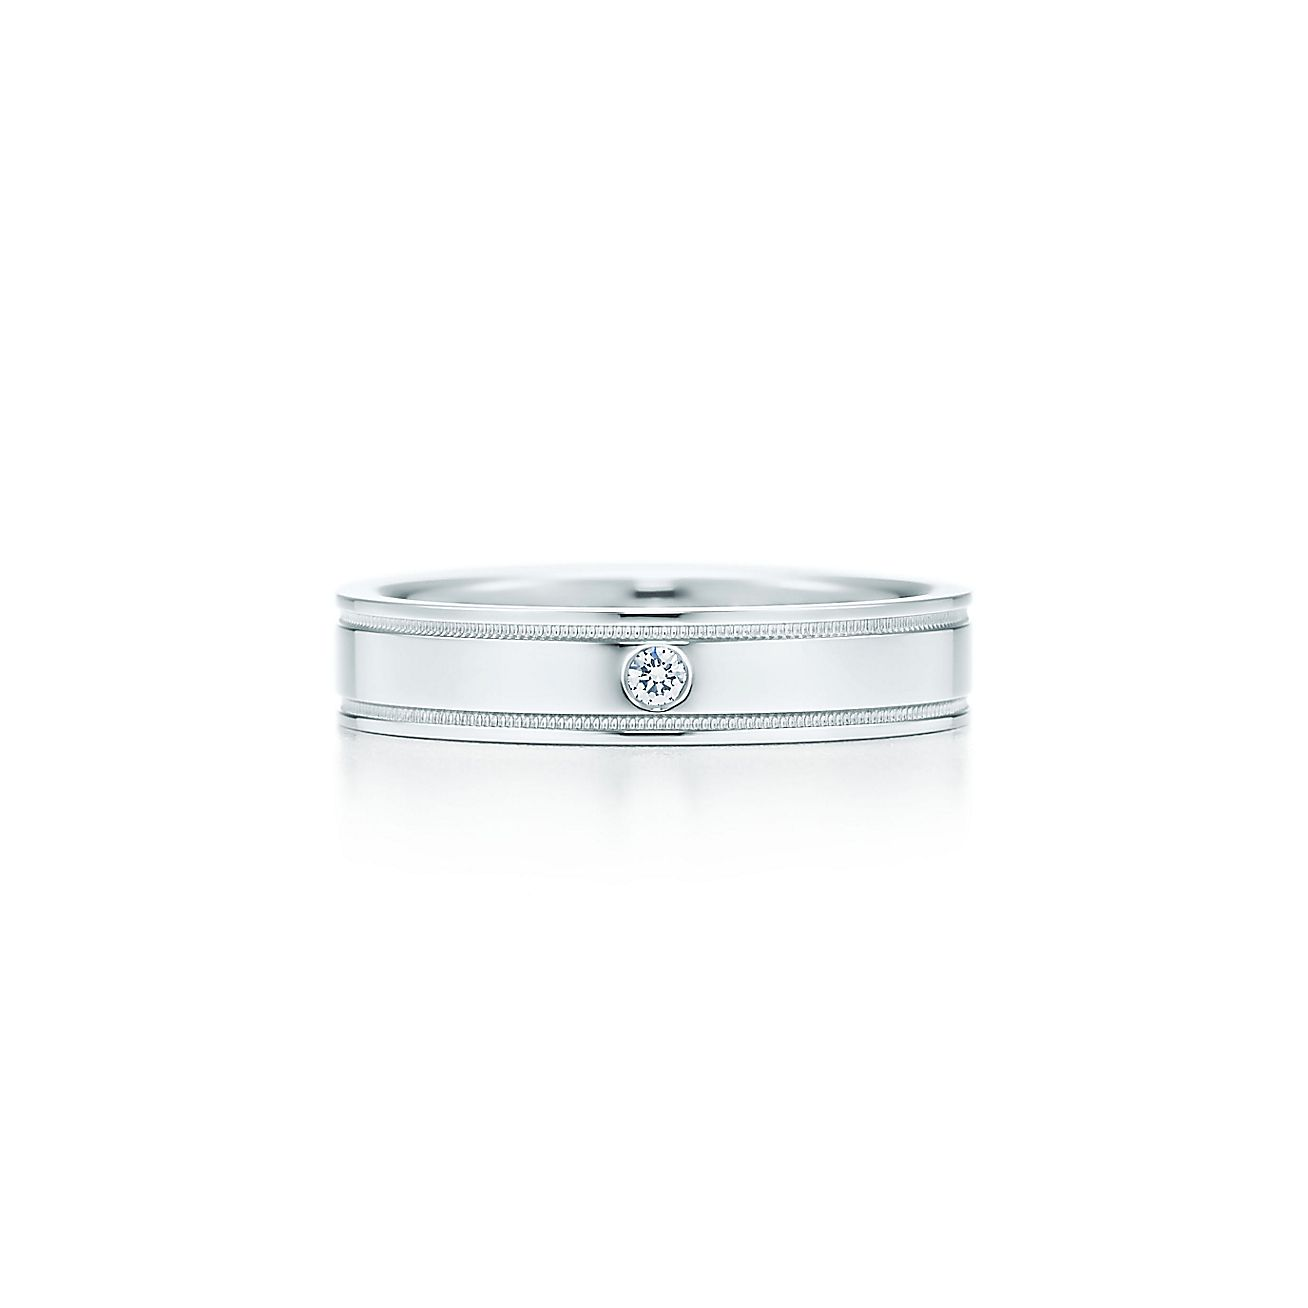 Tiffany Flat double milgrain wedding band ring in platinum with a